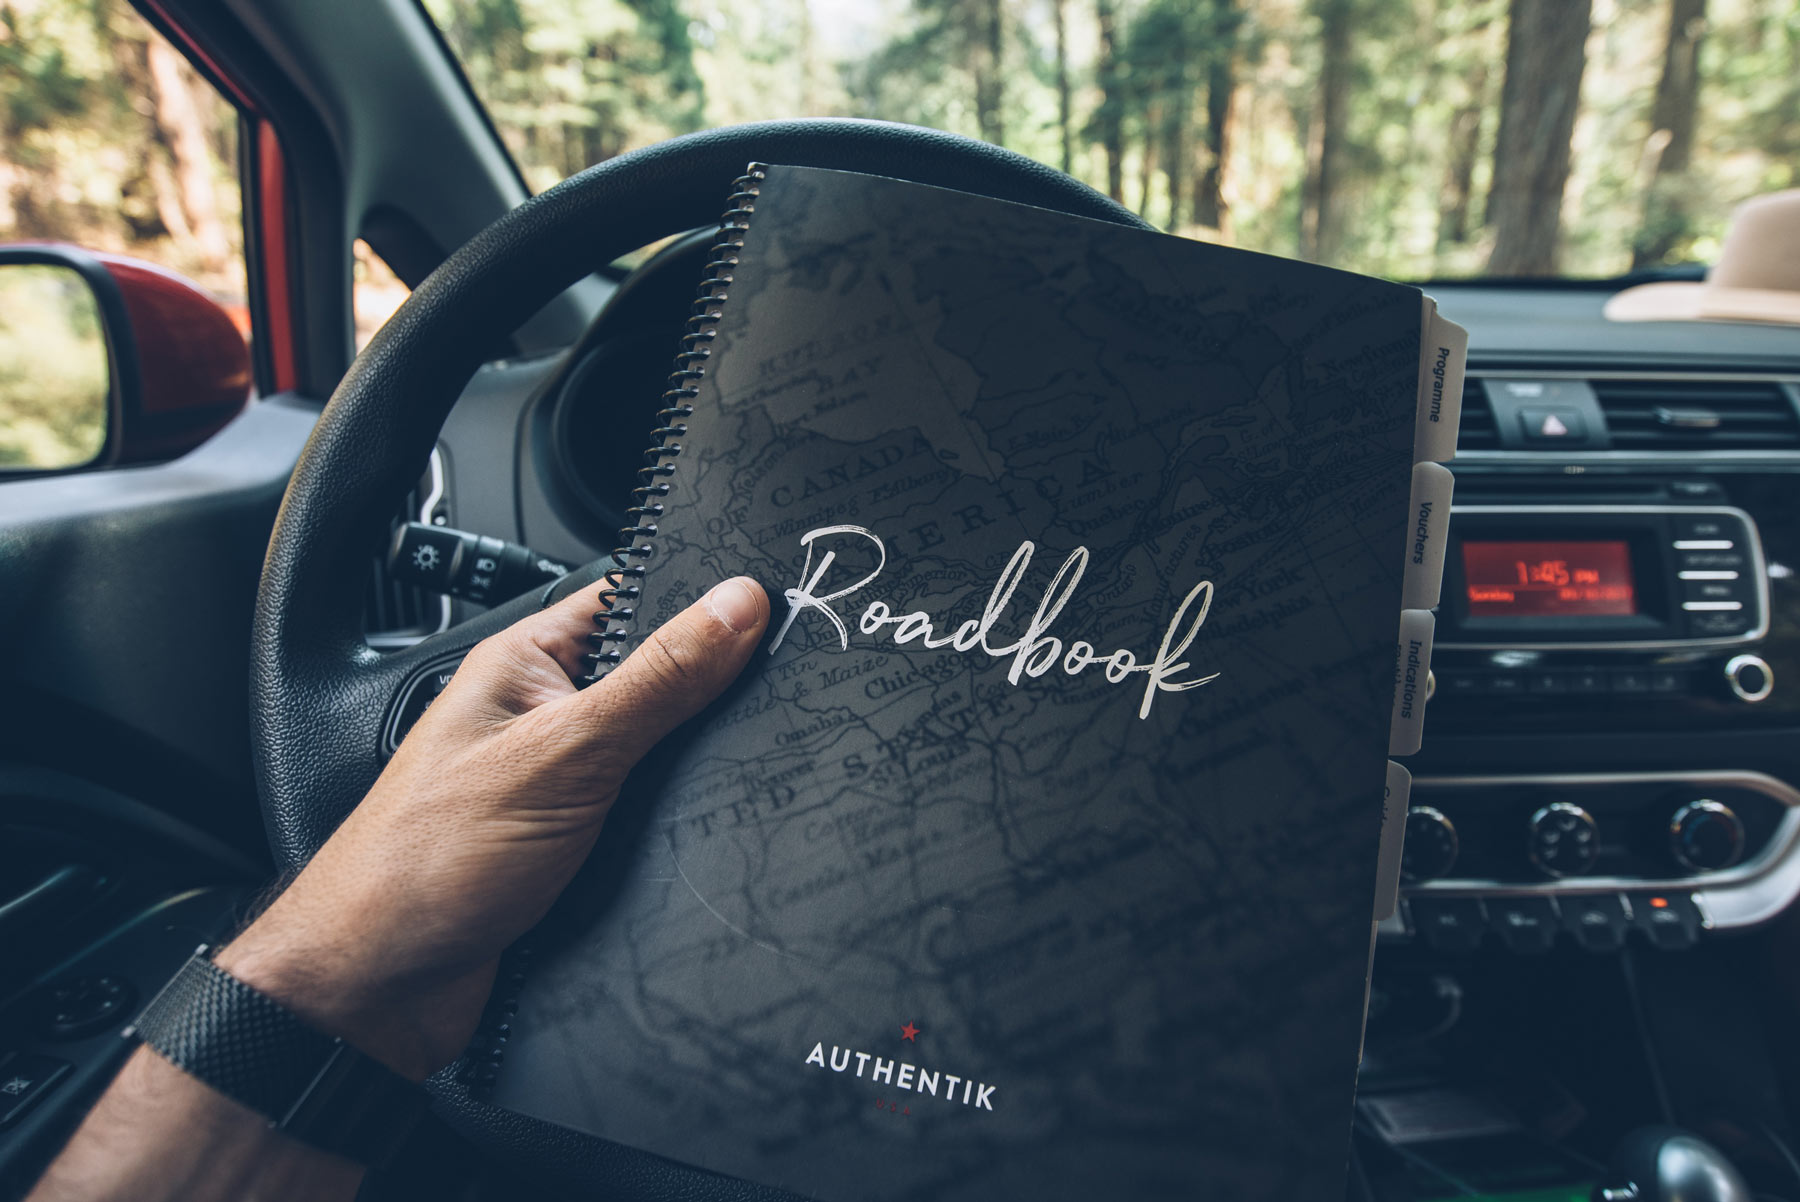 Road Book Authentik USA